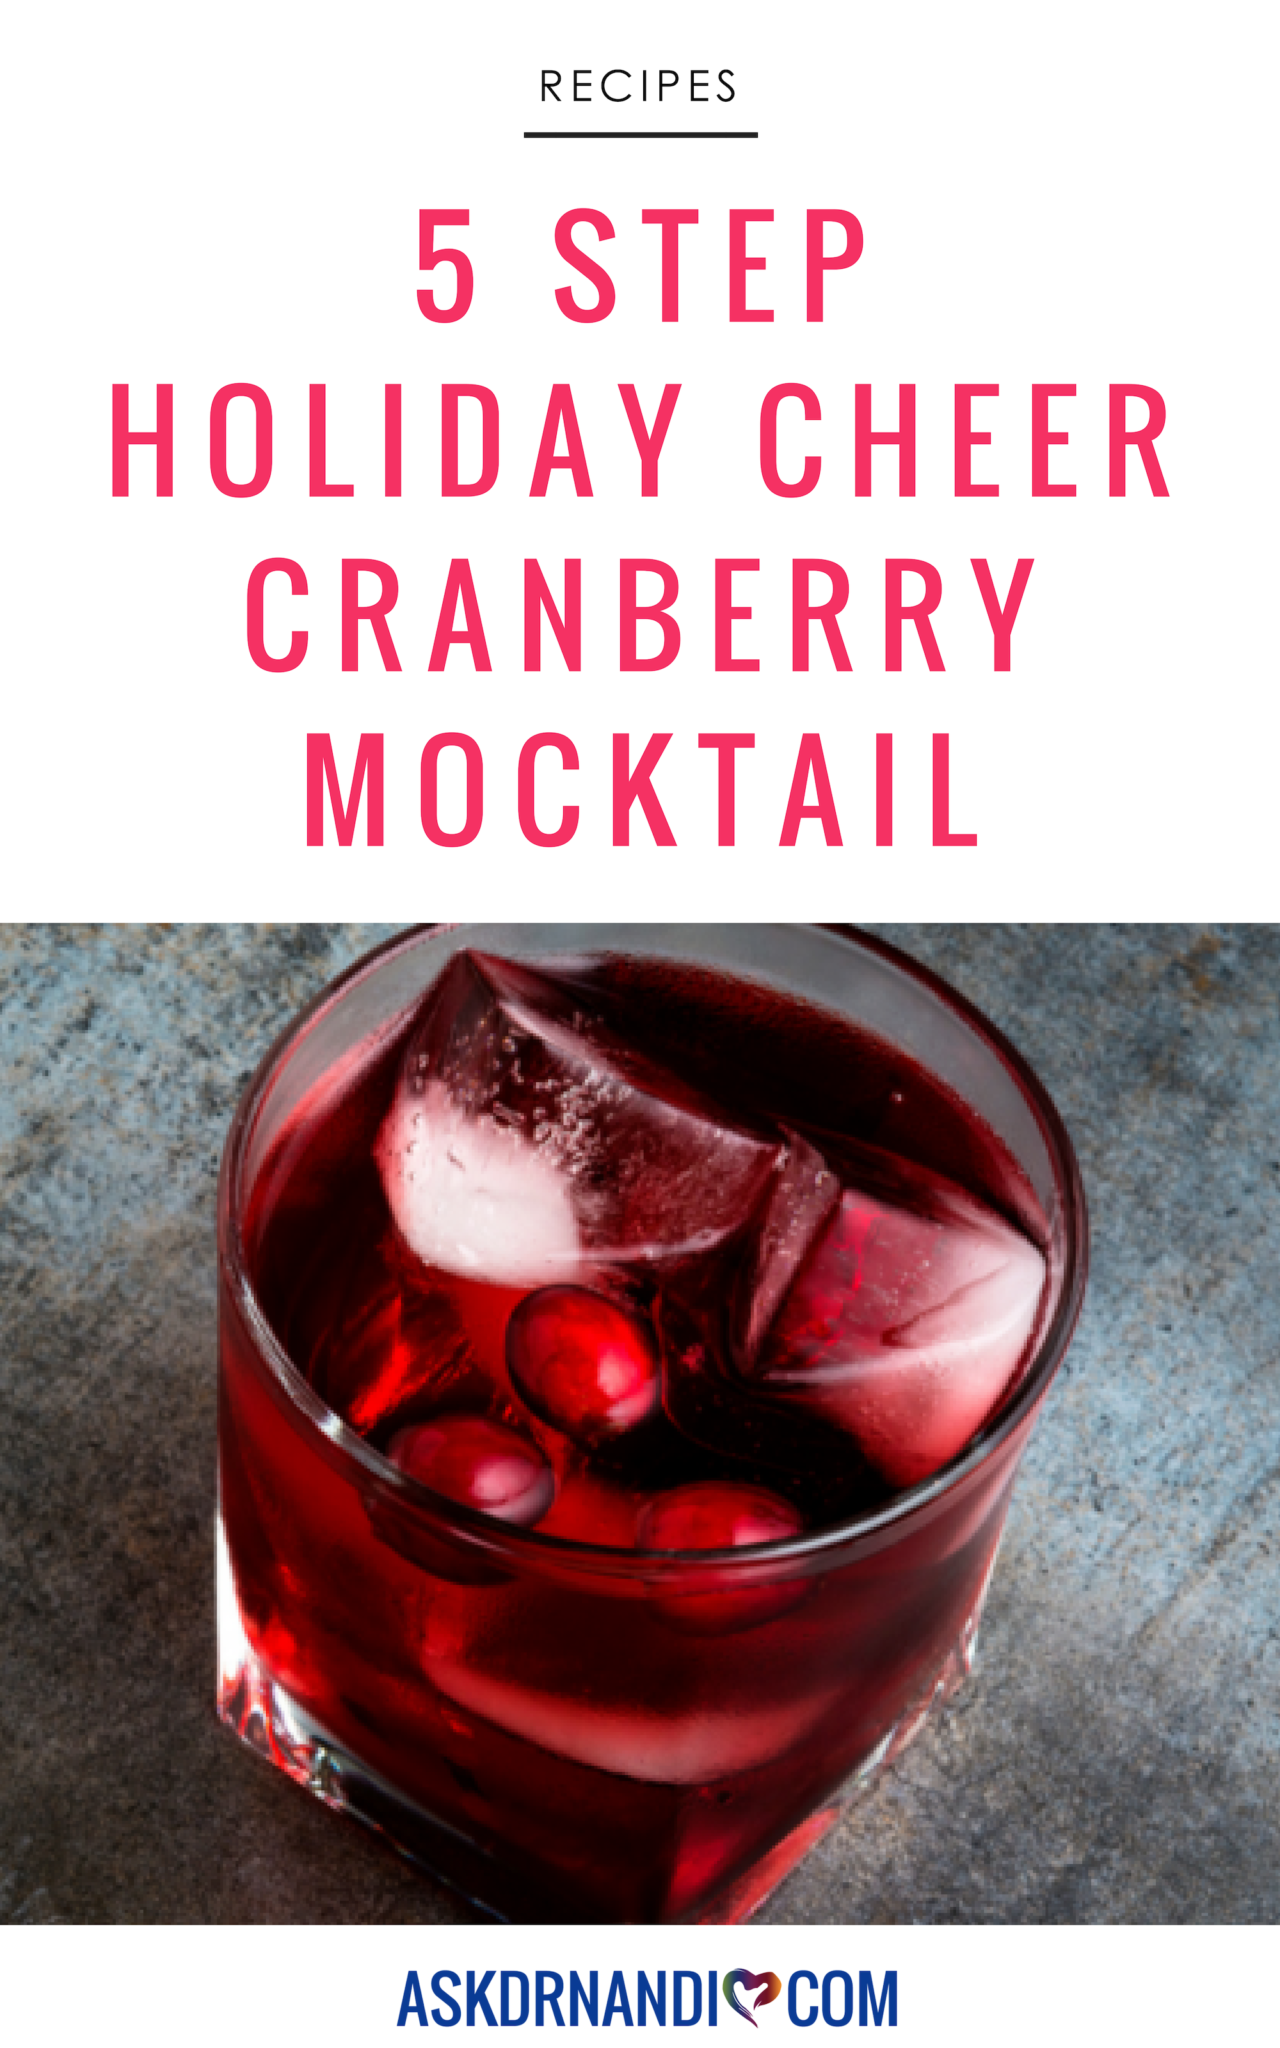 Holiday Cheer Cranberry Mocktail